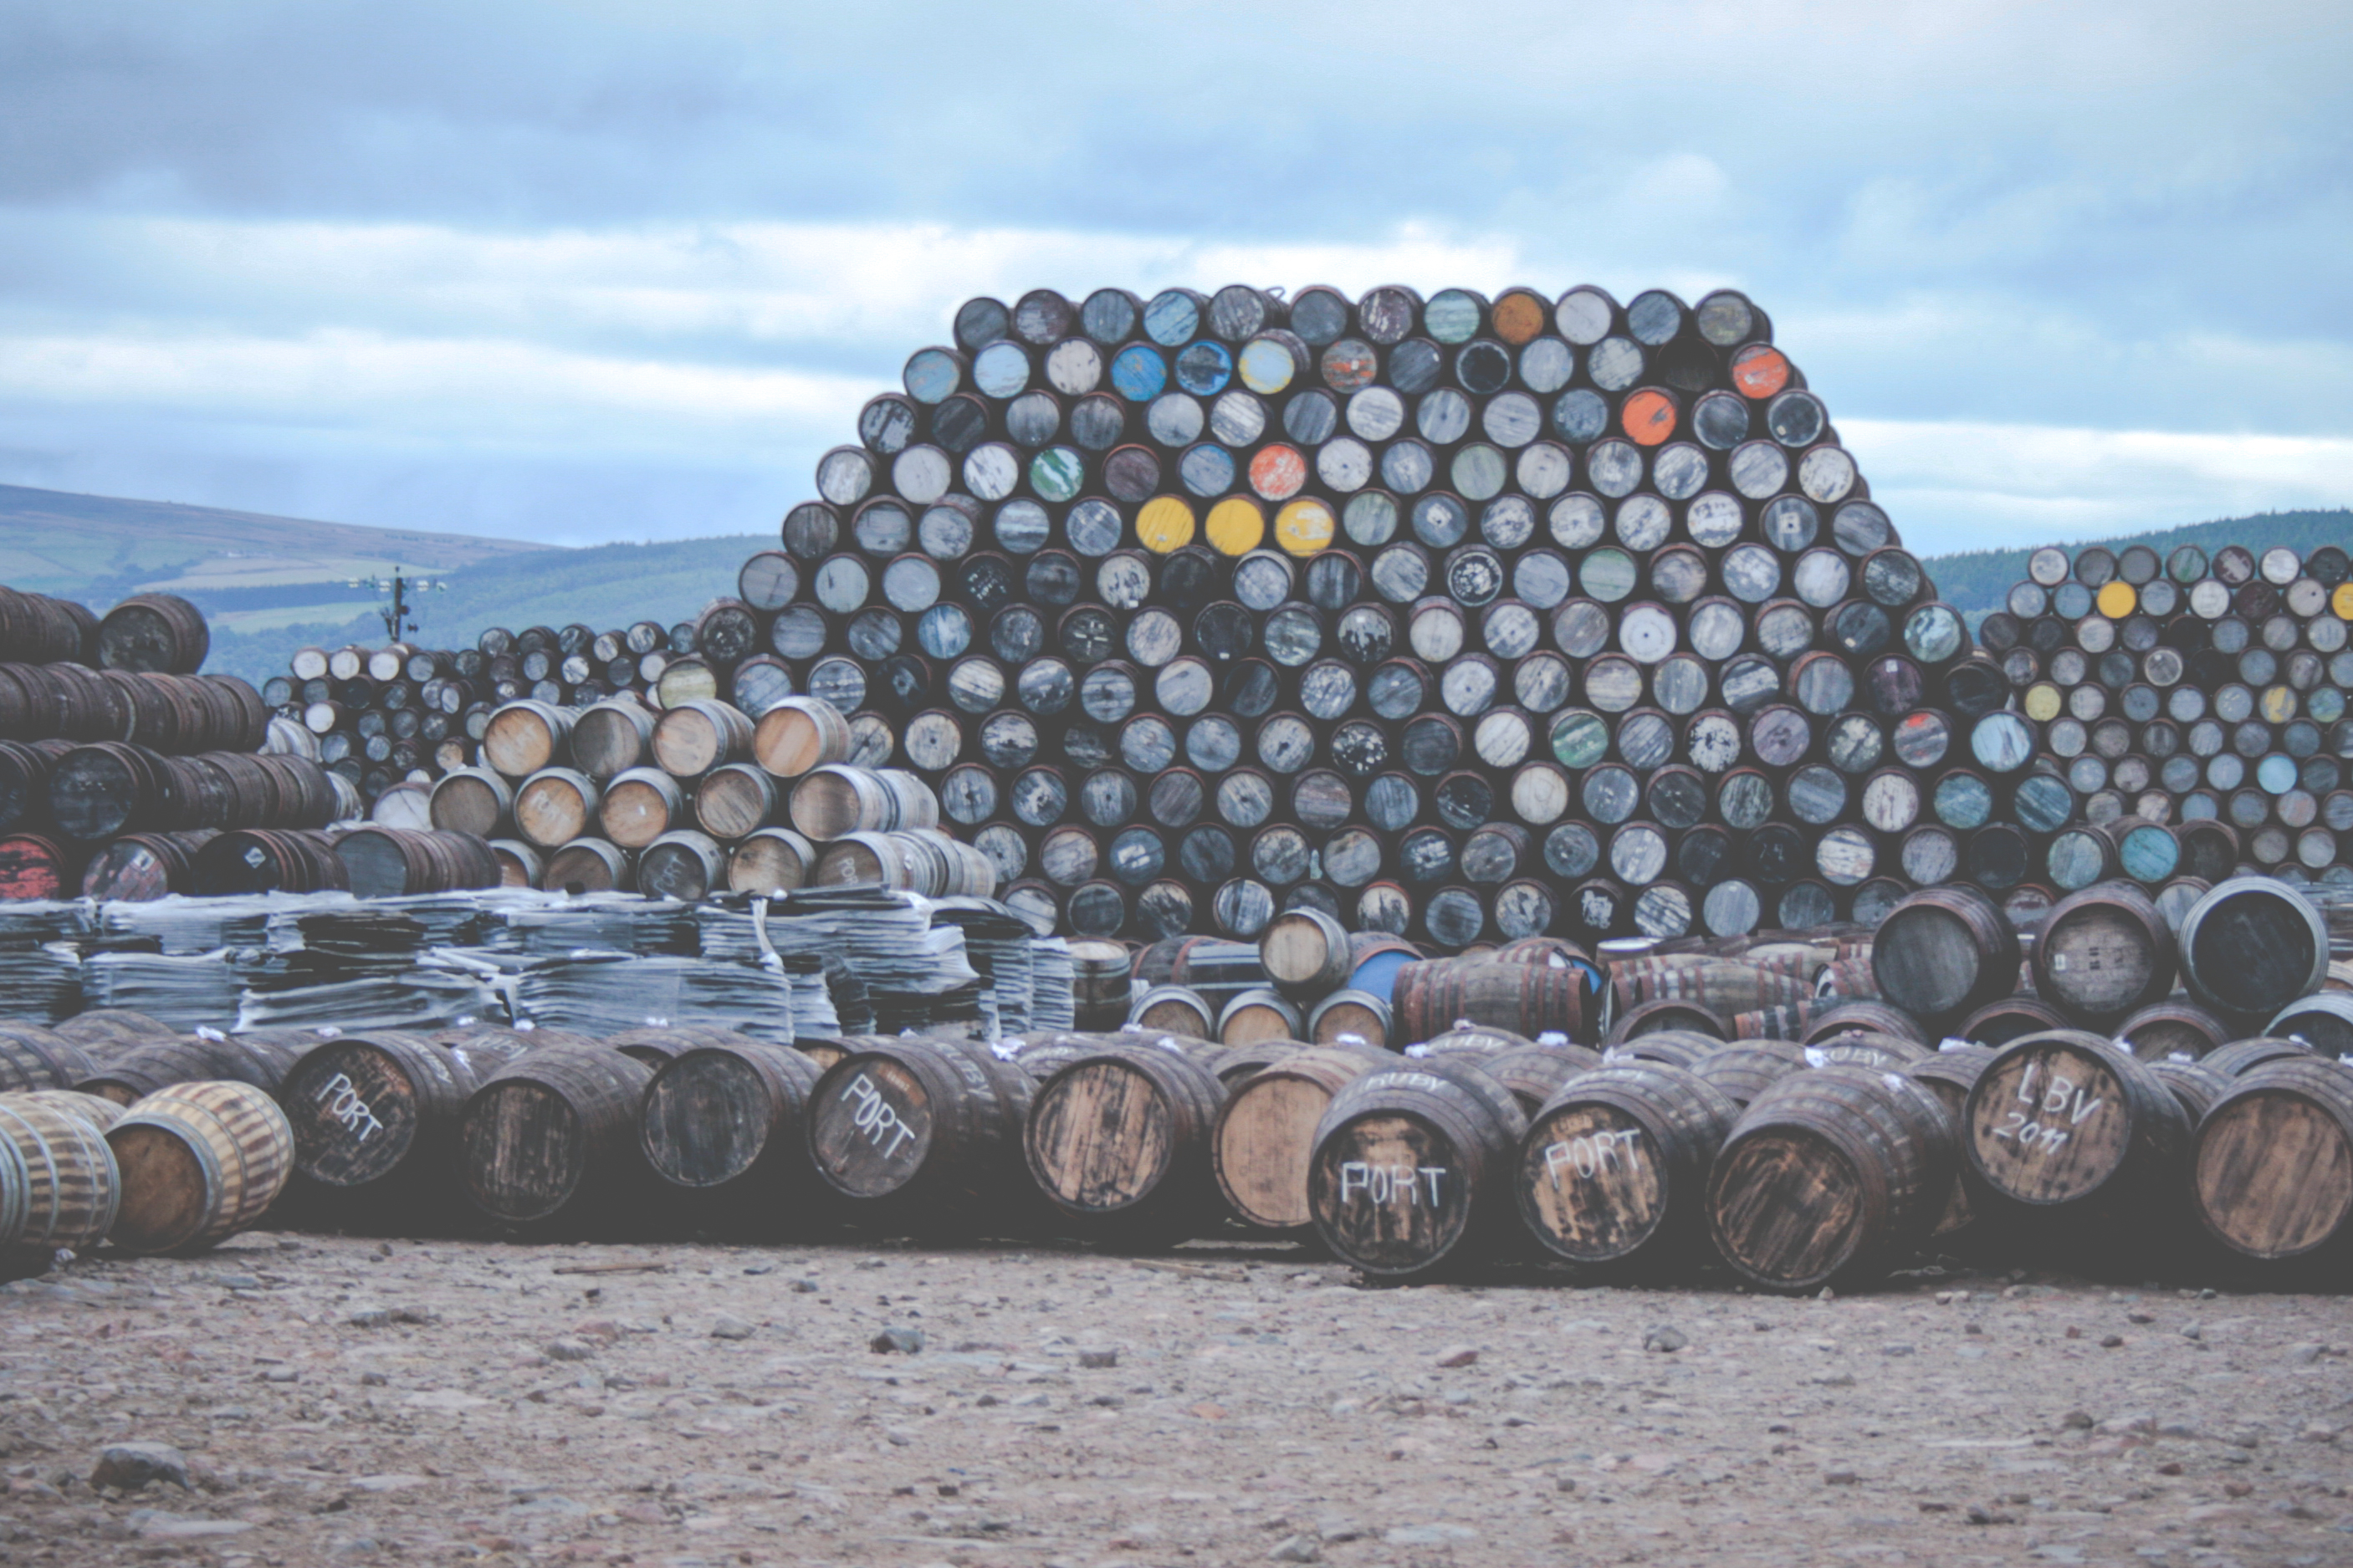 Scotland whisky barrels